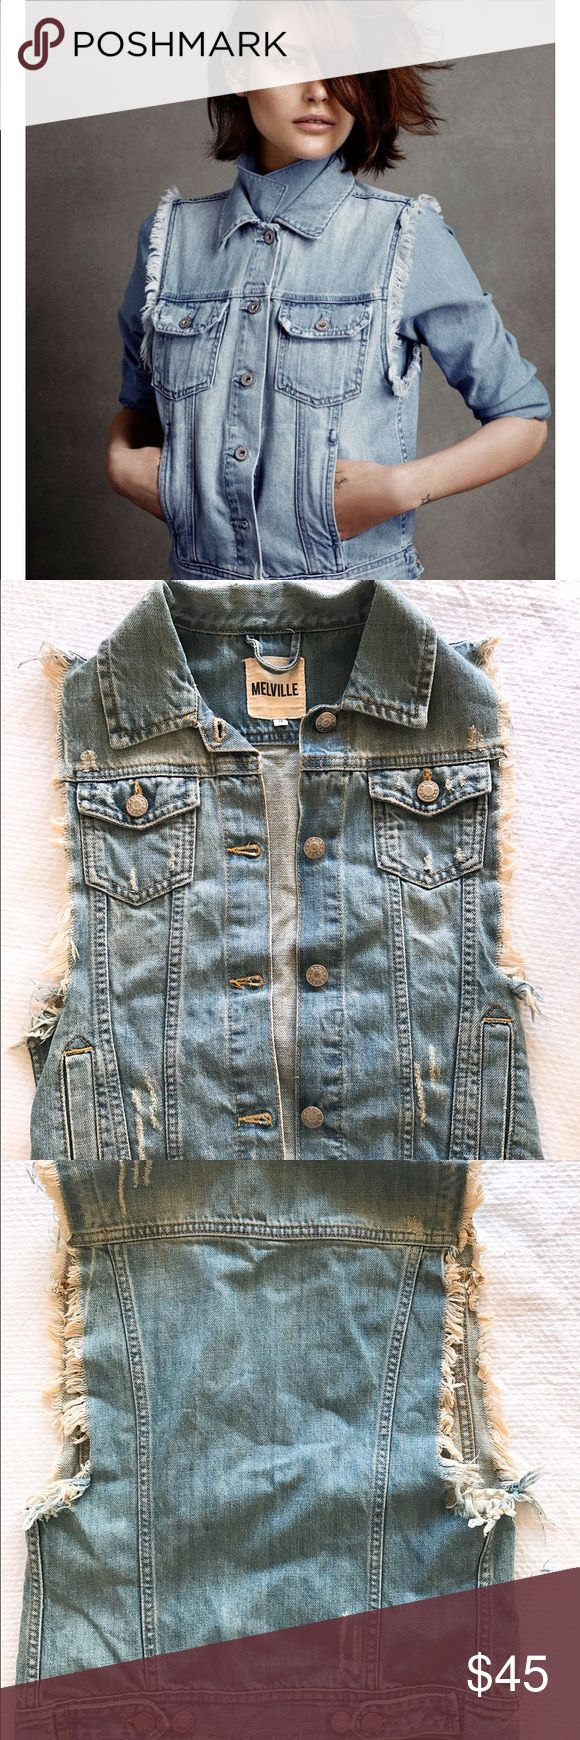 Brandy Melville denim vest frayed denim vest from brandy melville. purchased from another posher but never got around to wearing it. perfect condition Brandy Melville Jackets & Coats